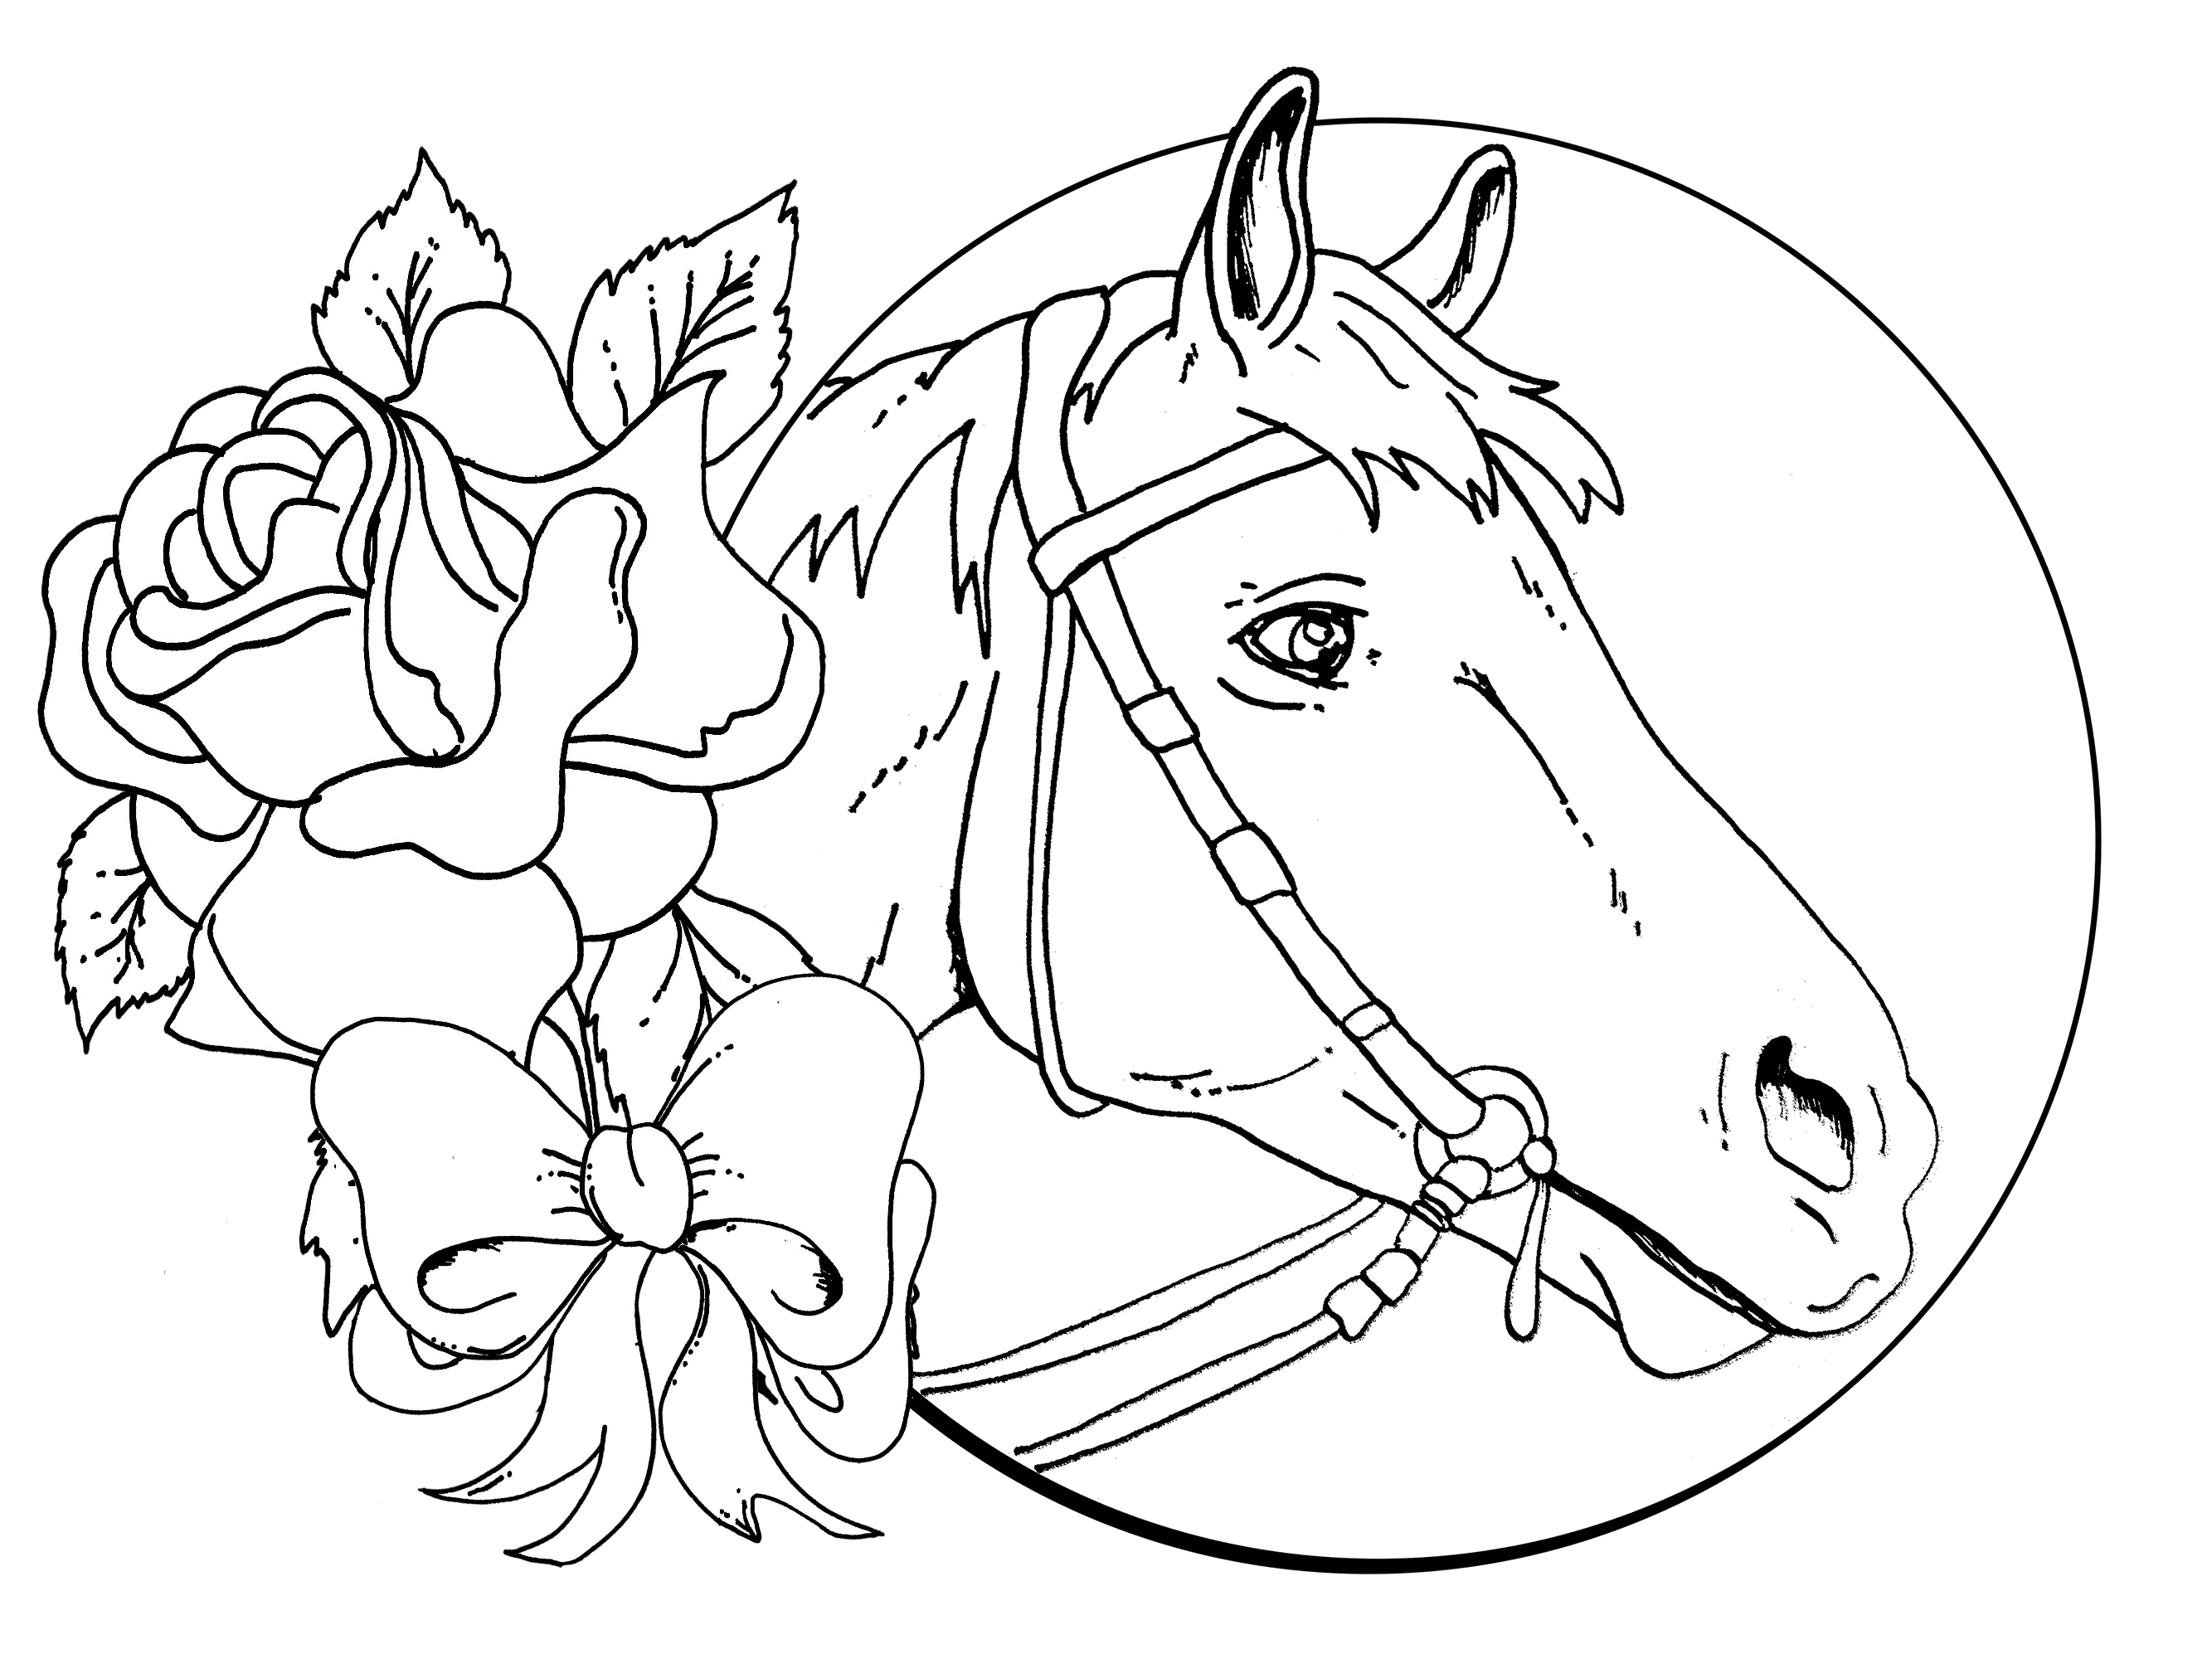 coloring pages for girls3 also with coloring pages for girls free printable and online on girl coloring pages printable additionally printable girl coloring pages tryonshorts  on girl coloring pages printable besides girl printable coloring pages tryonshorts  on girl coloring pages printable including girl printable coloring pages tryonshorts  on girl coloring pages printable